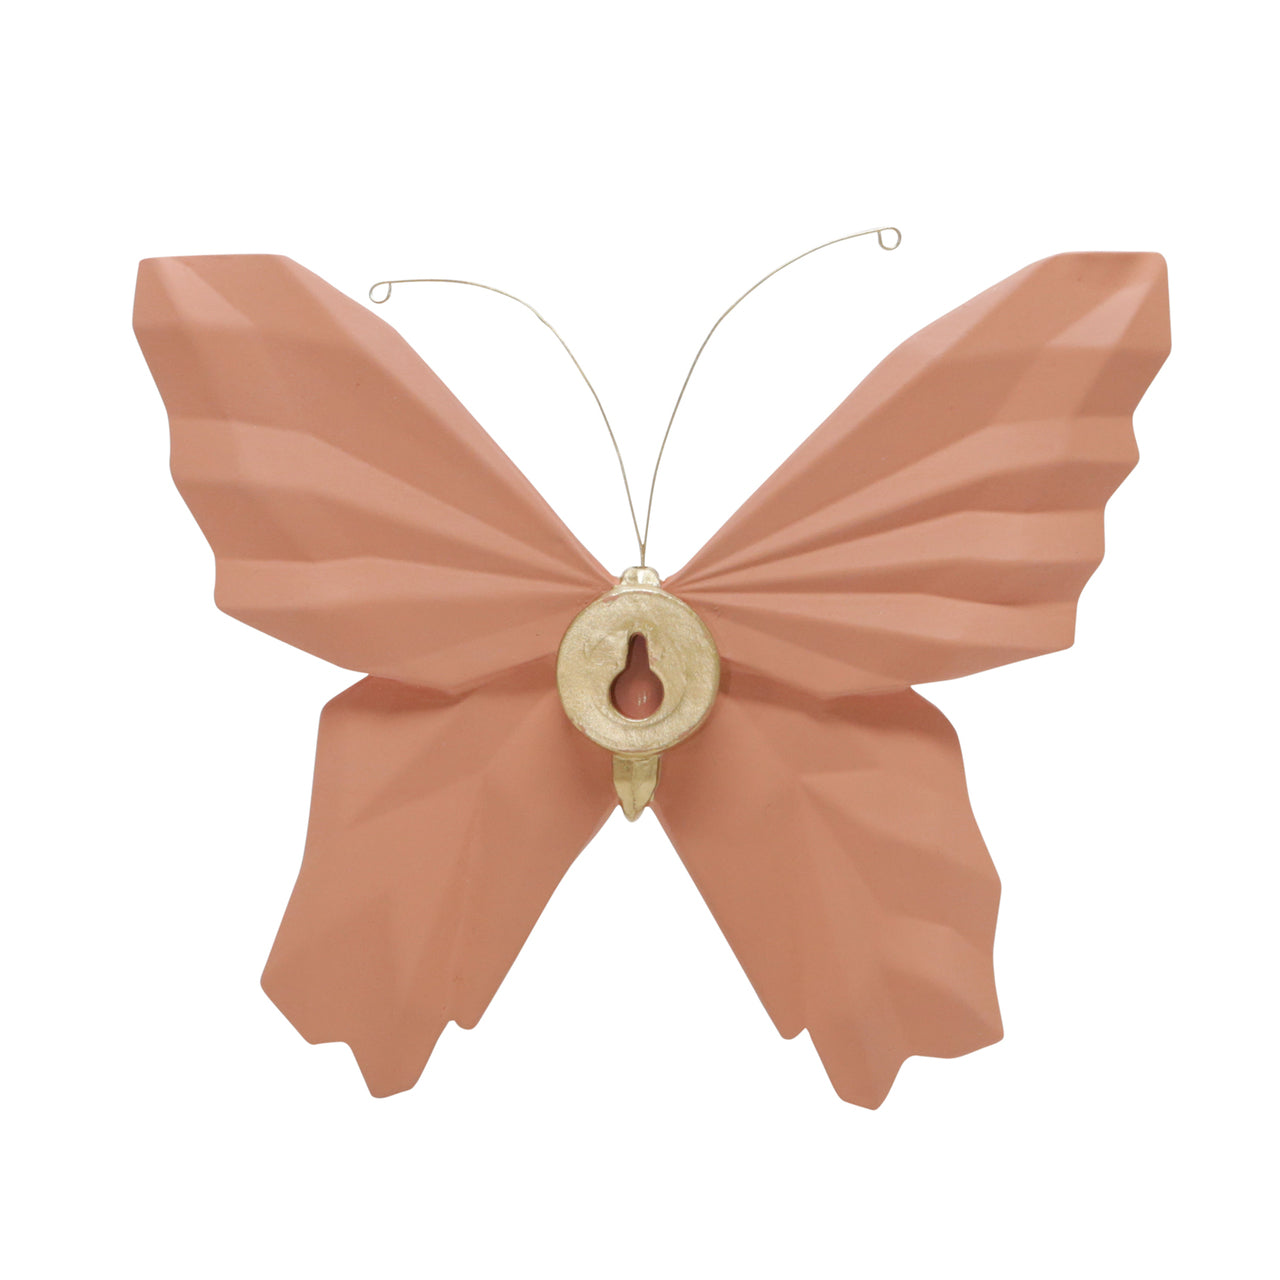 "RESIN 8"" W ORIGAMI BUTTERFLY WALL DECOR, SALMON - Casa Muebles"